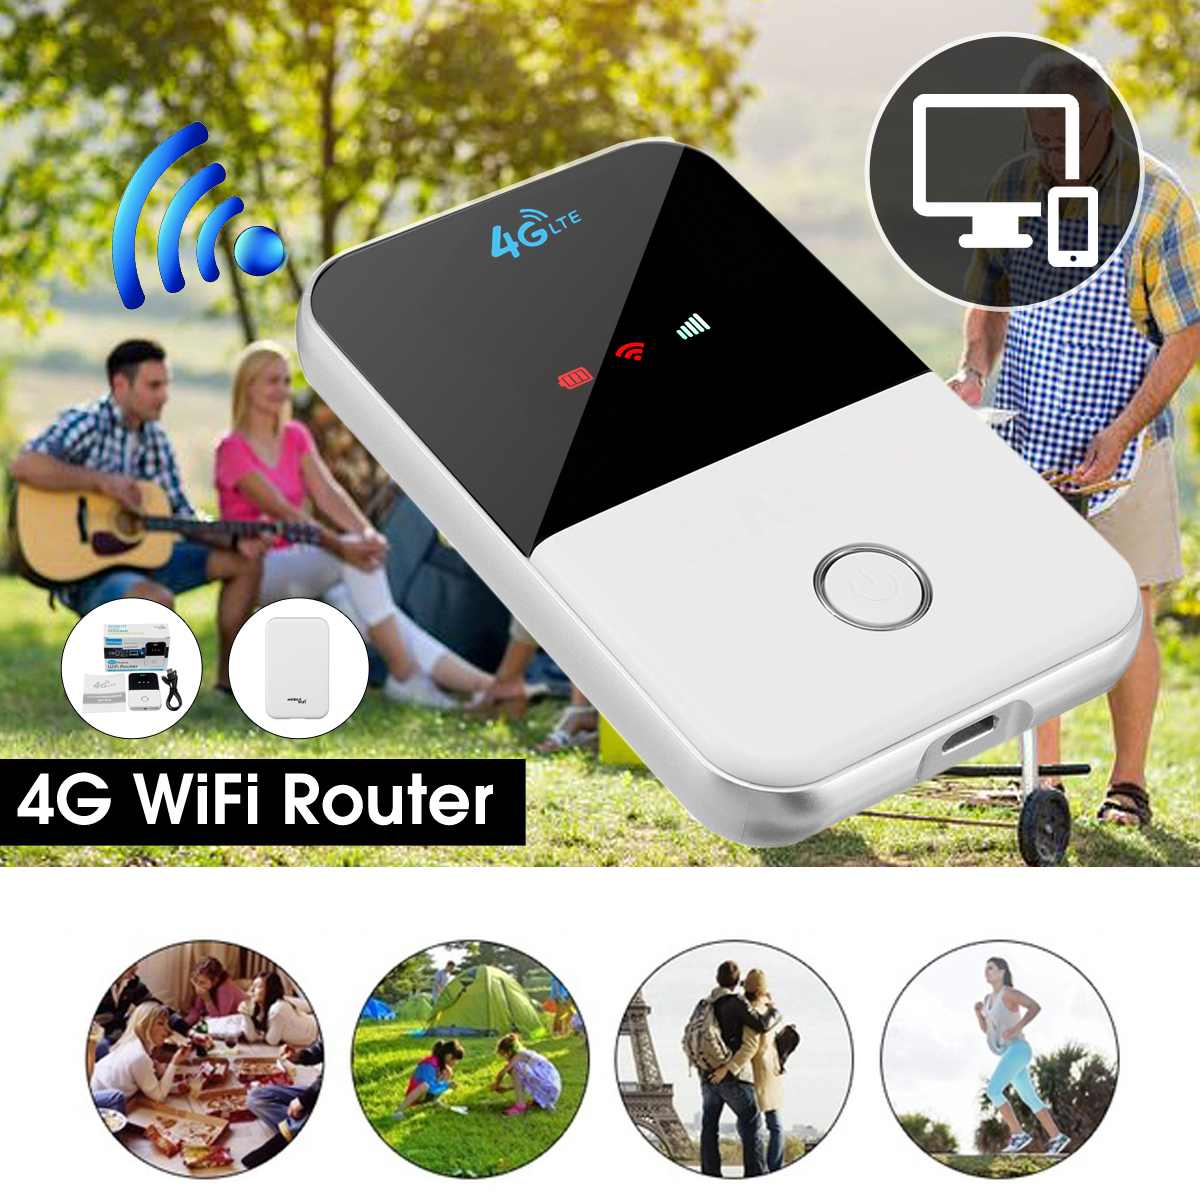 MF825 4G LTE mi-fi Router Portable 150Mbps Modem Hotspot Car WiFi